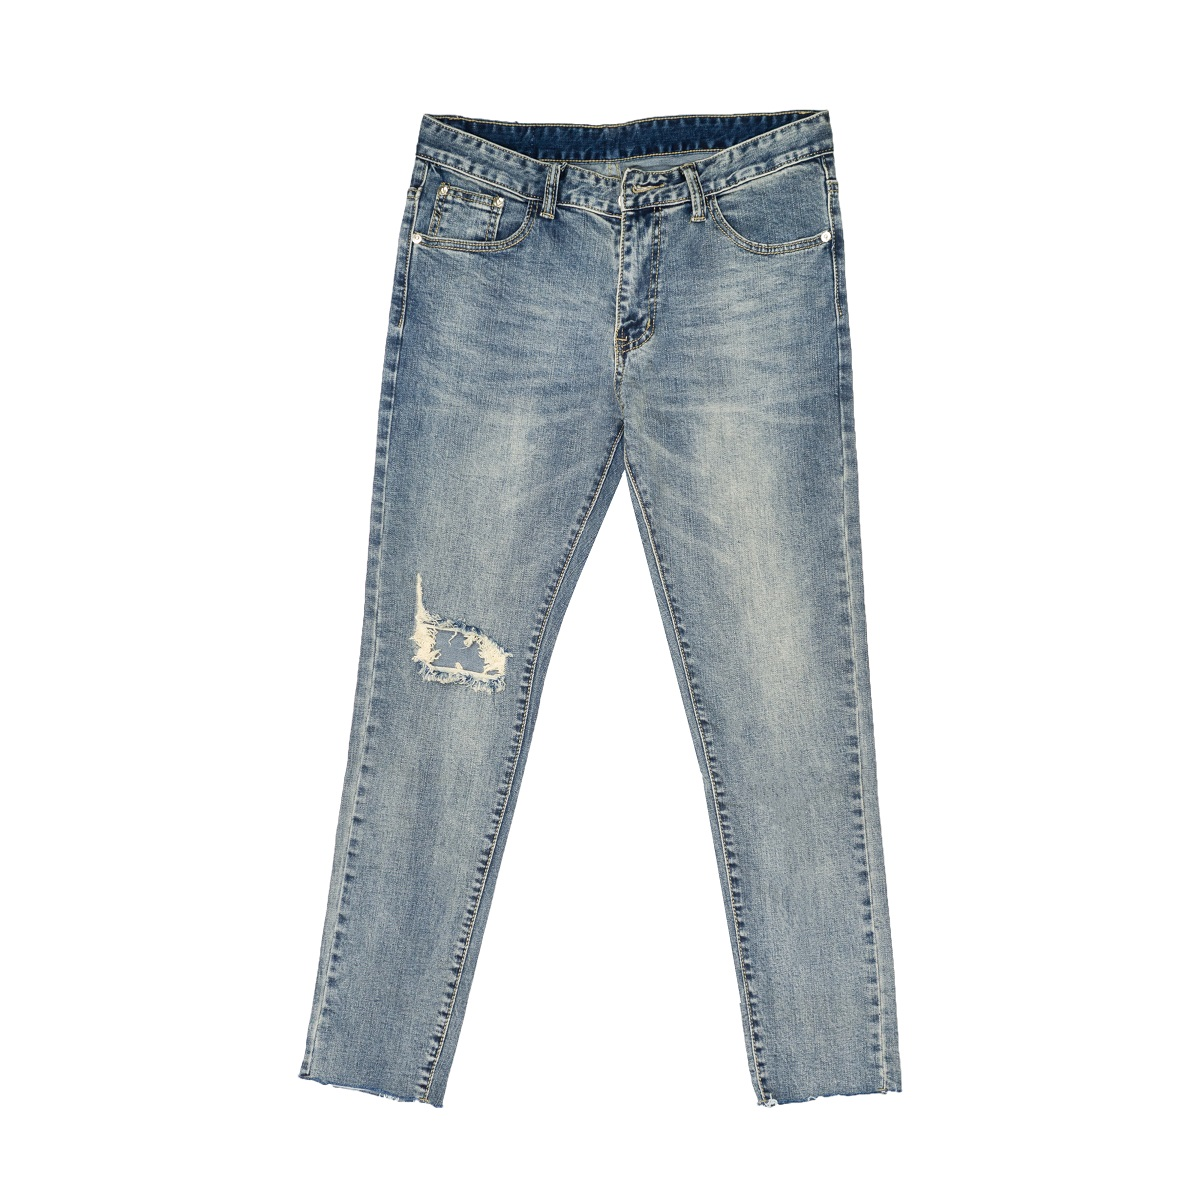 DSW AUTHENTIC JEANS